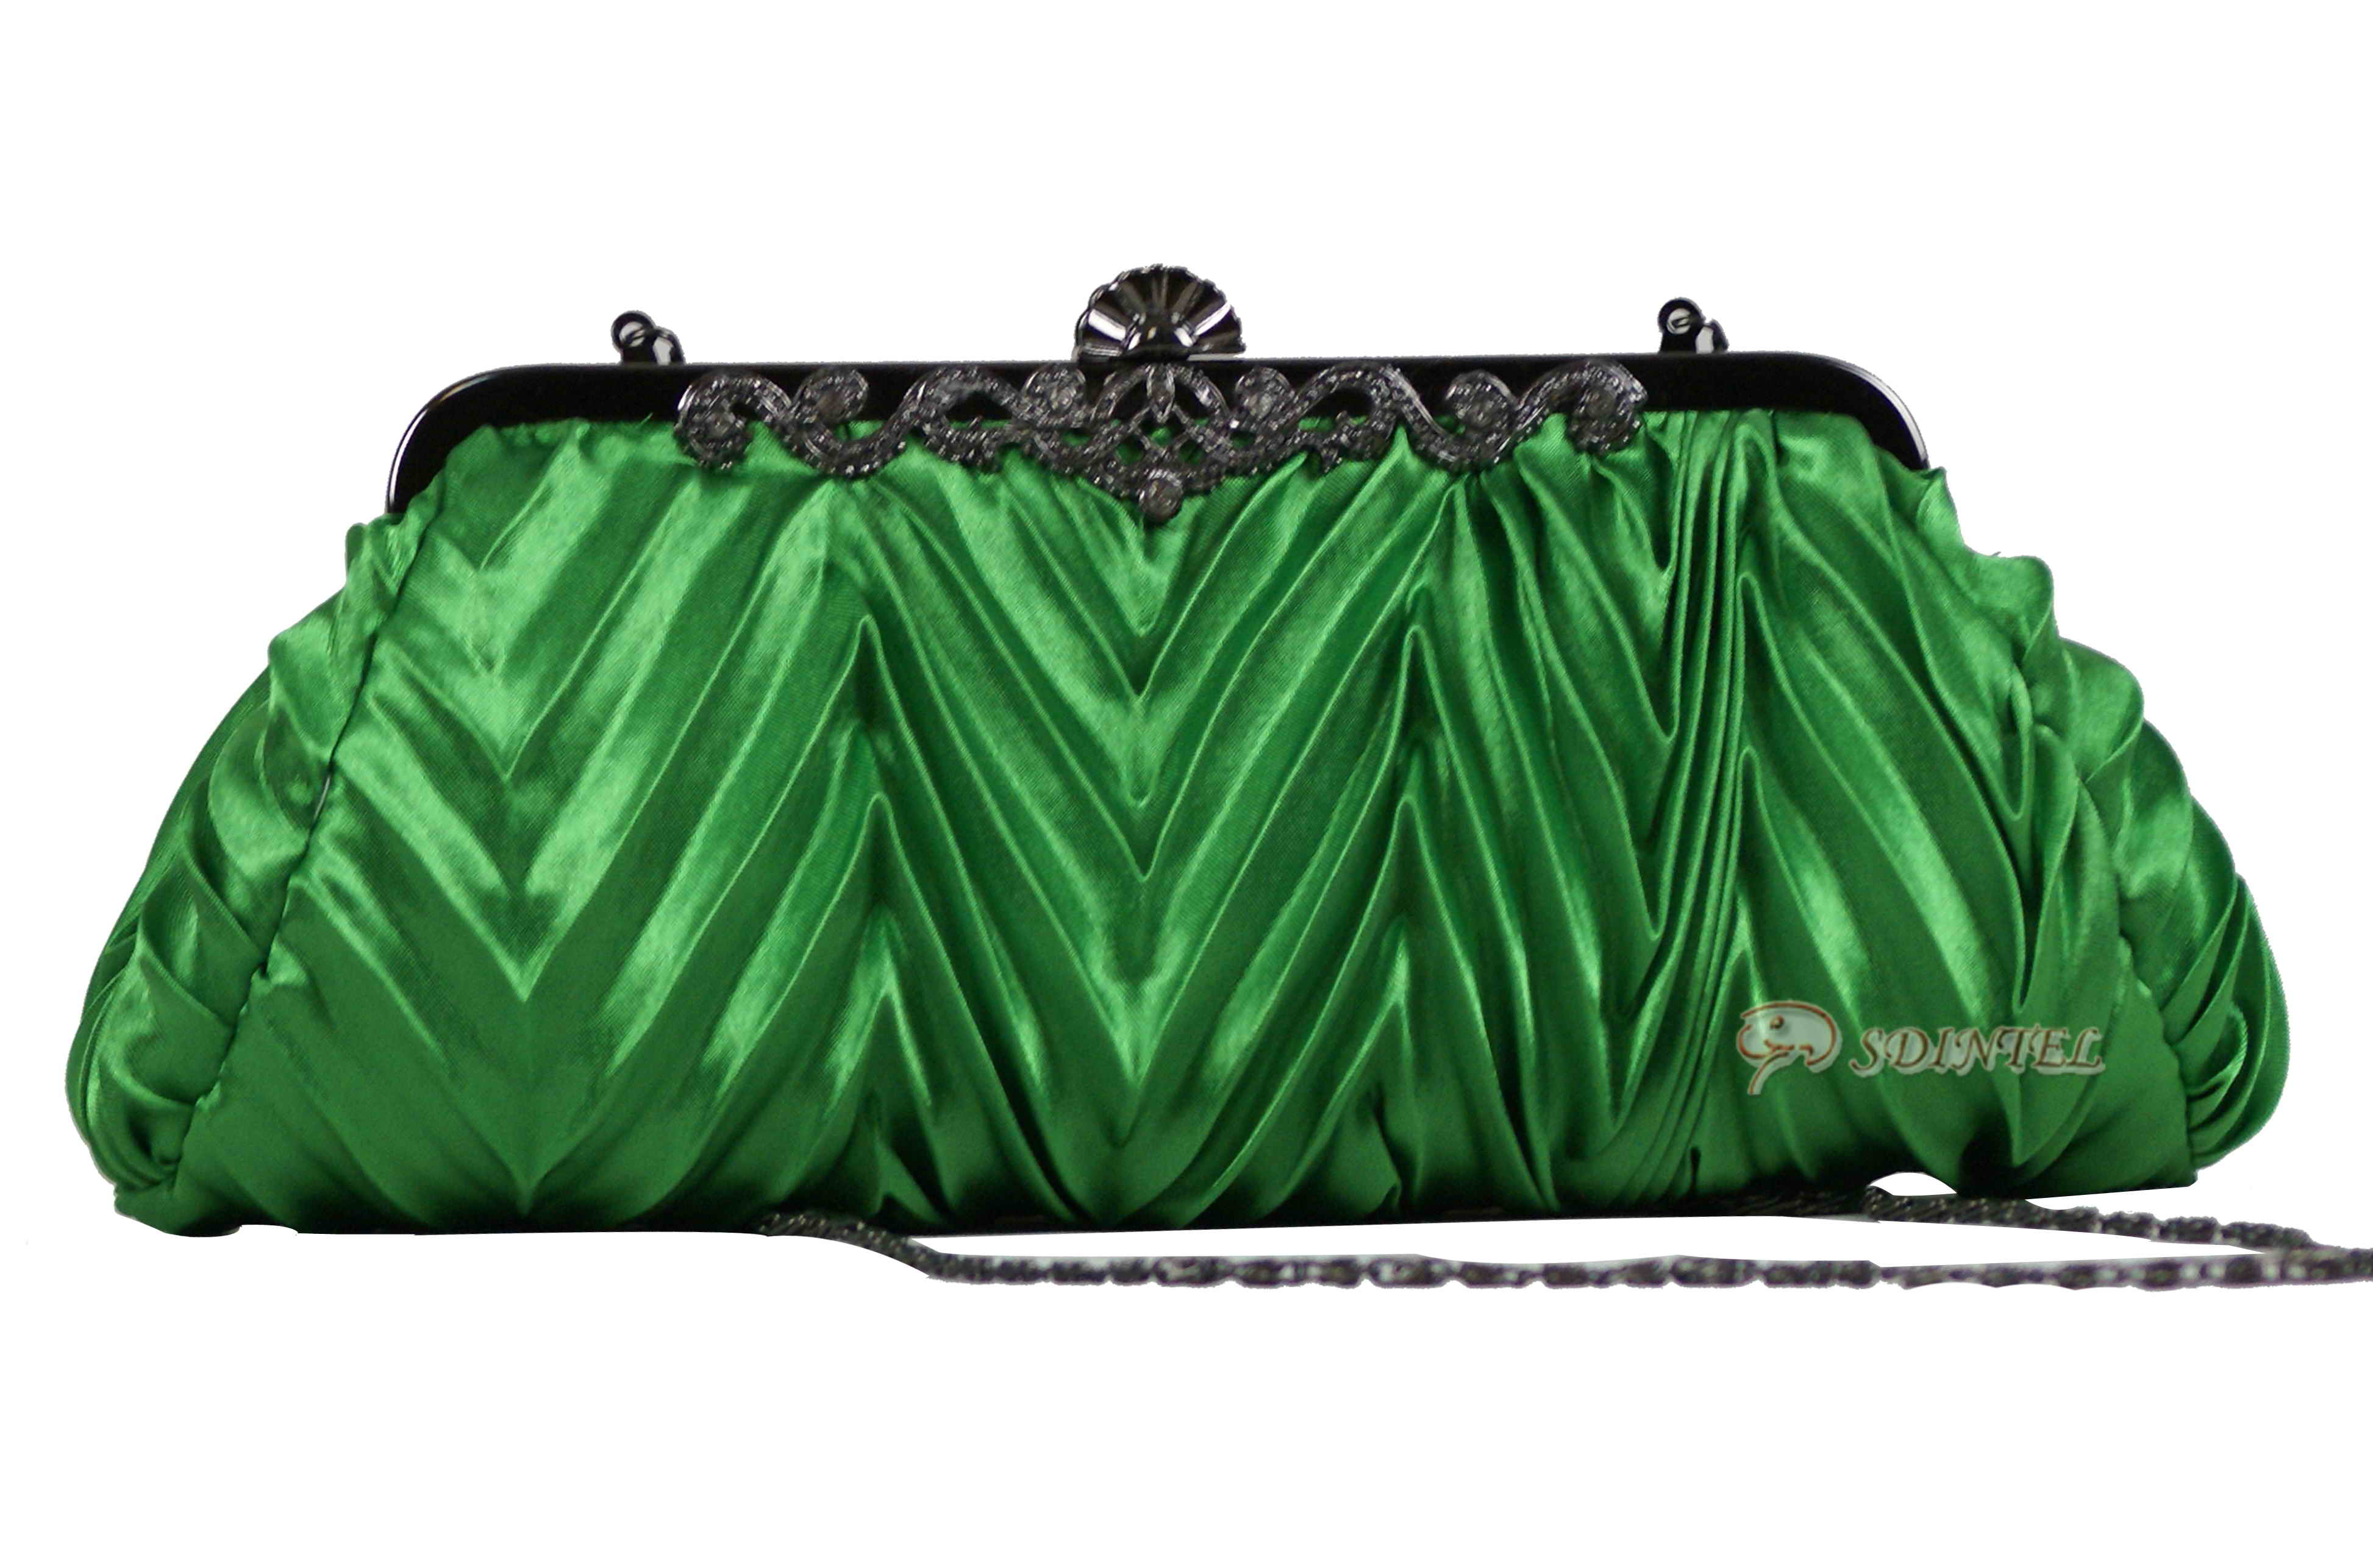 LADIES SATIN EVENING WEDDING PROM PARTY CLUTCH HANDBAG WOMEN GIRL BAG GREEN 20